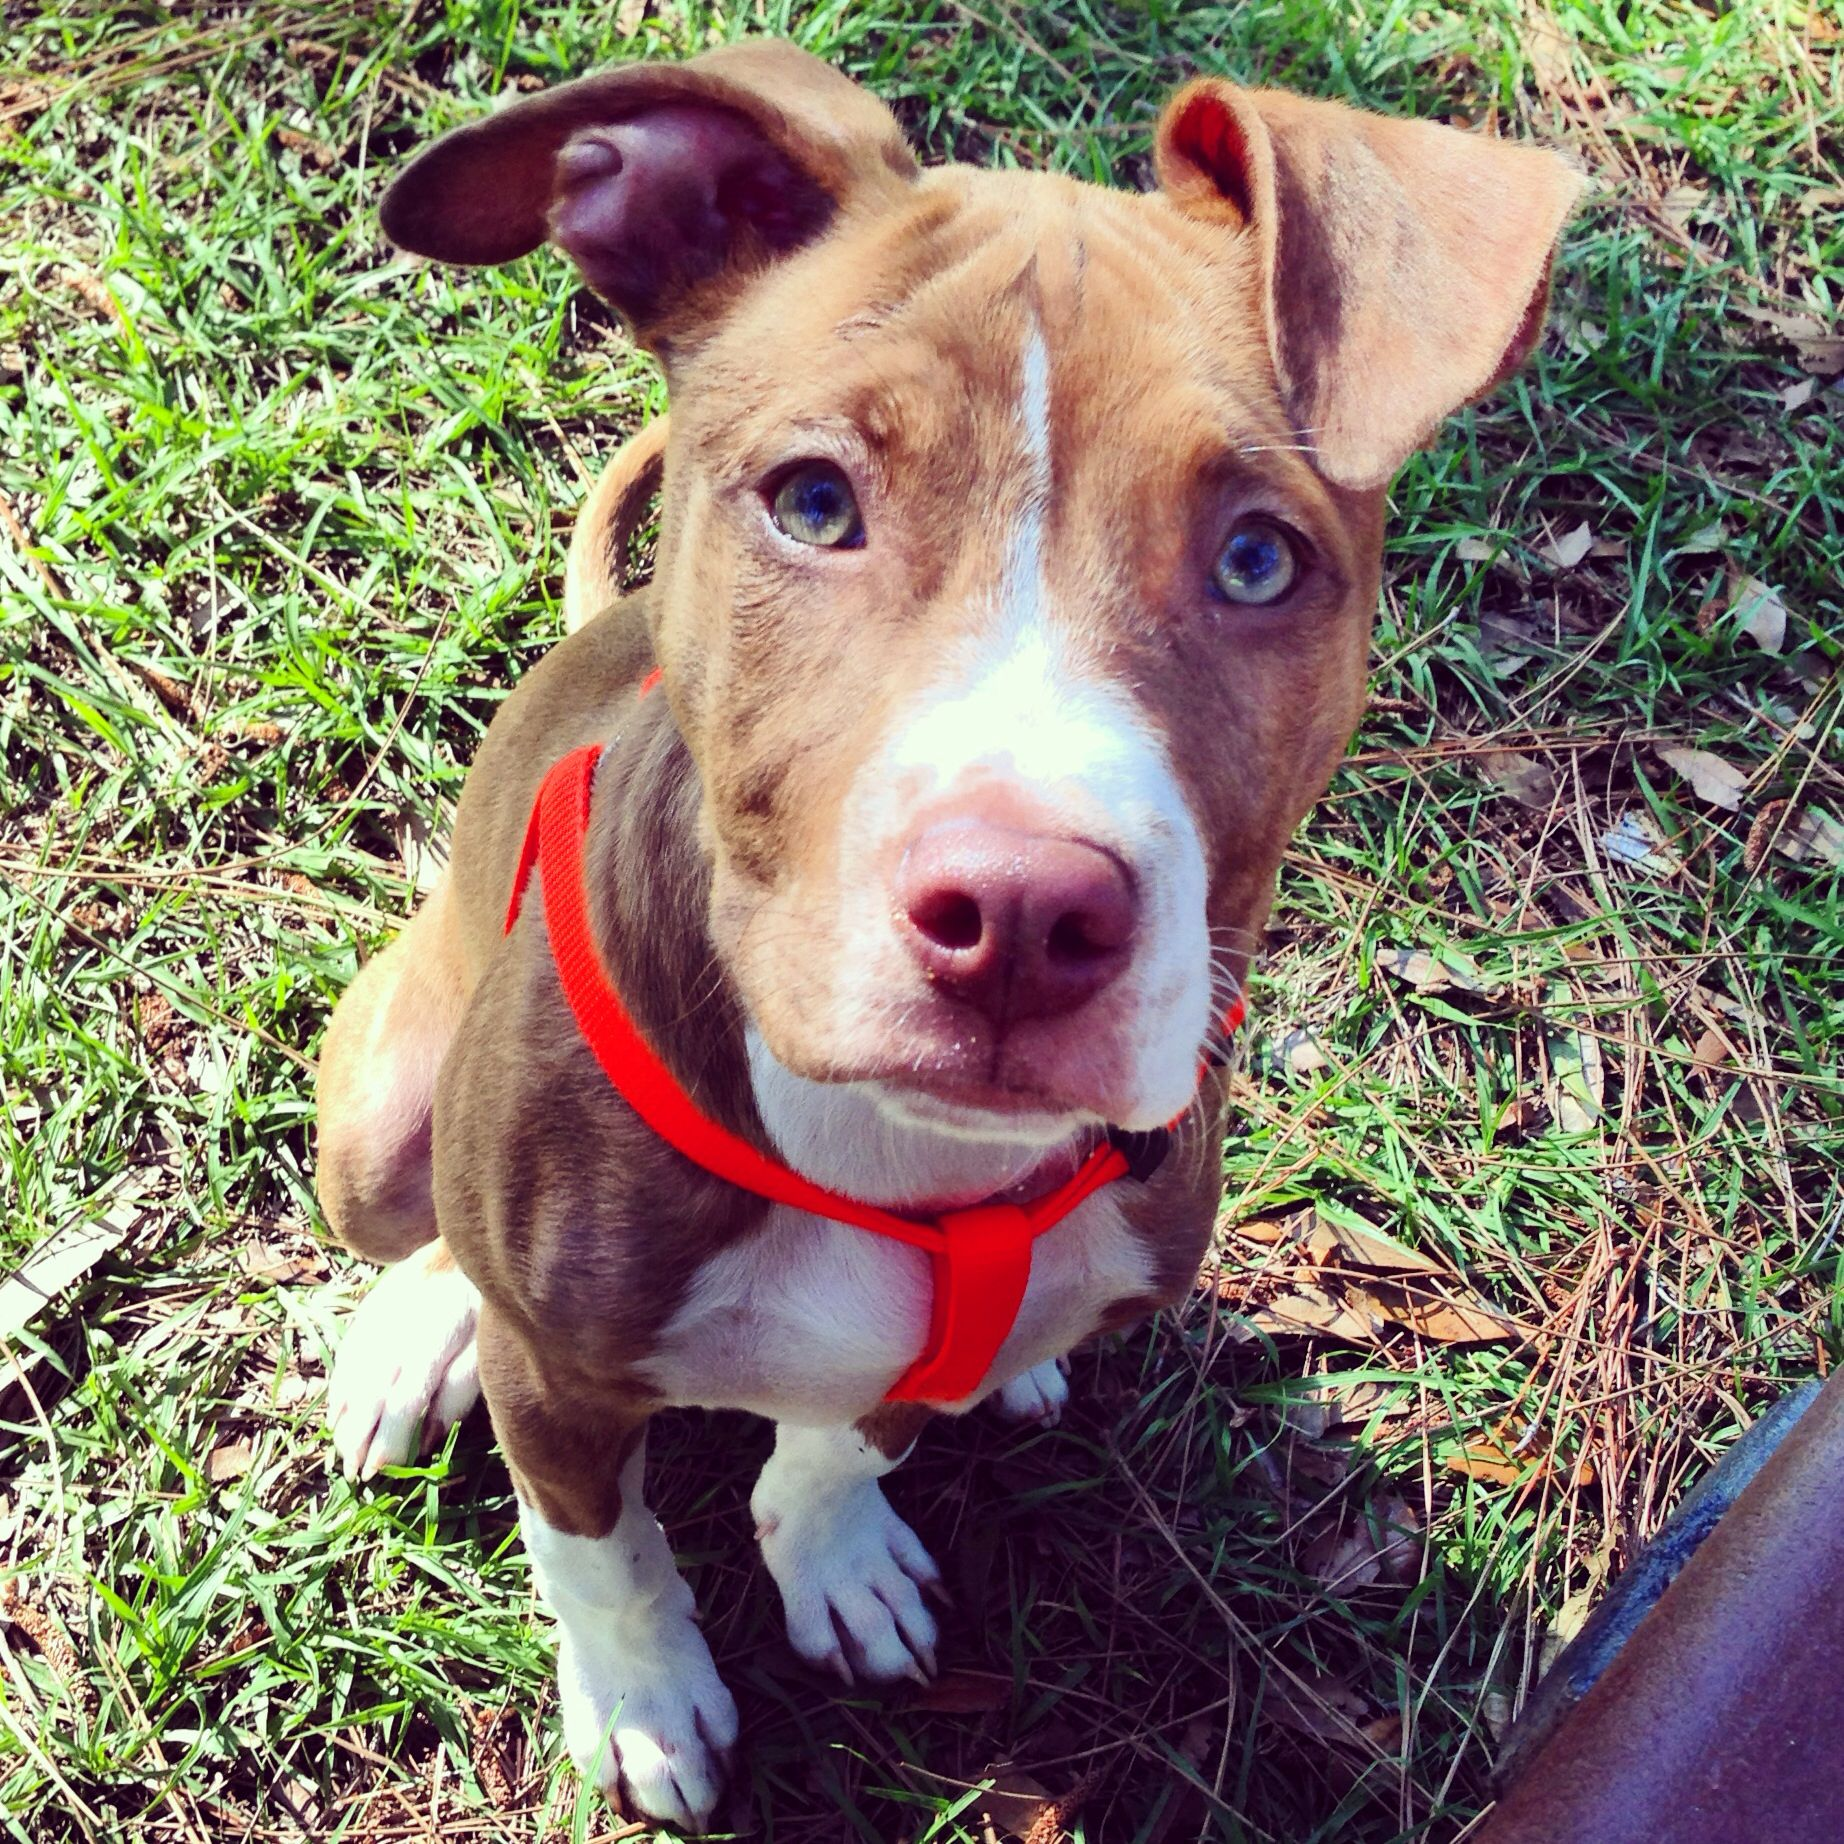 Rednose Brindle Pitbull Puppy With Green Eyes 3 Pitbull Puppies